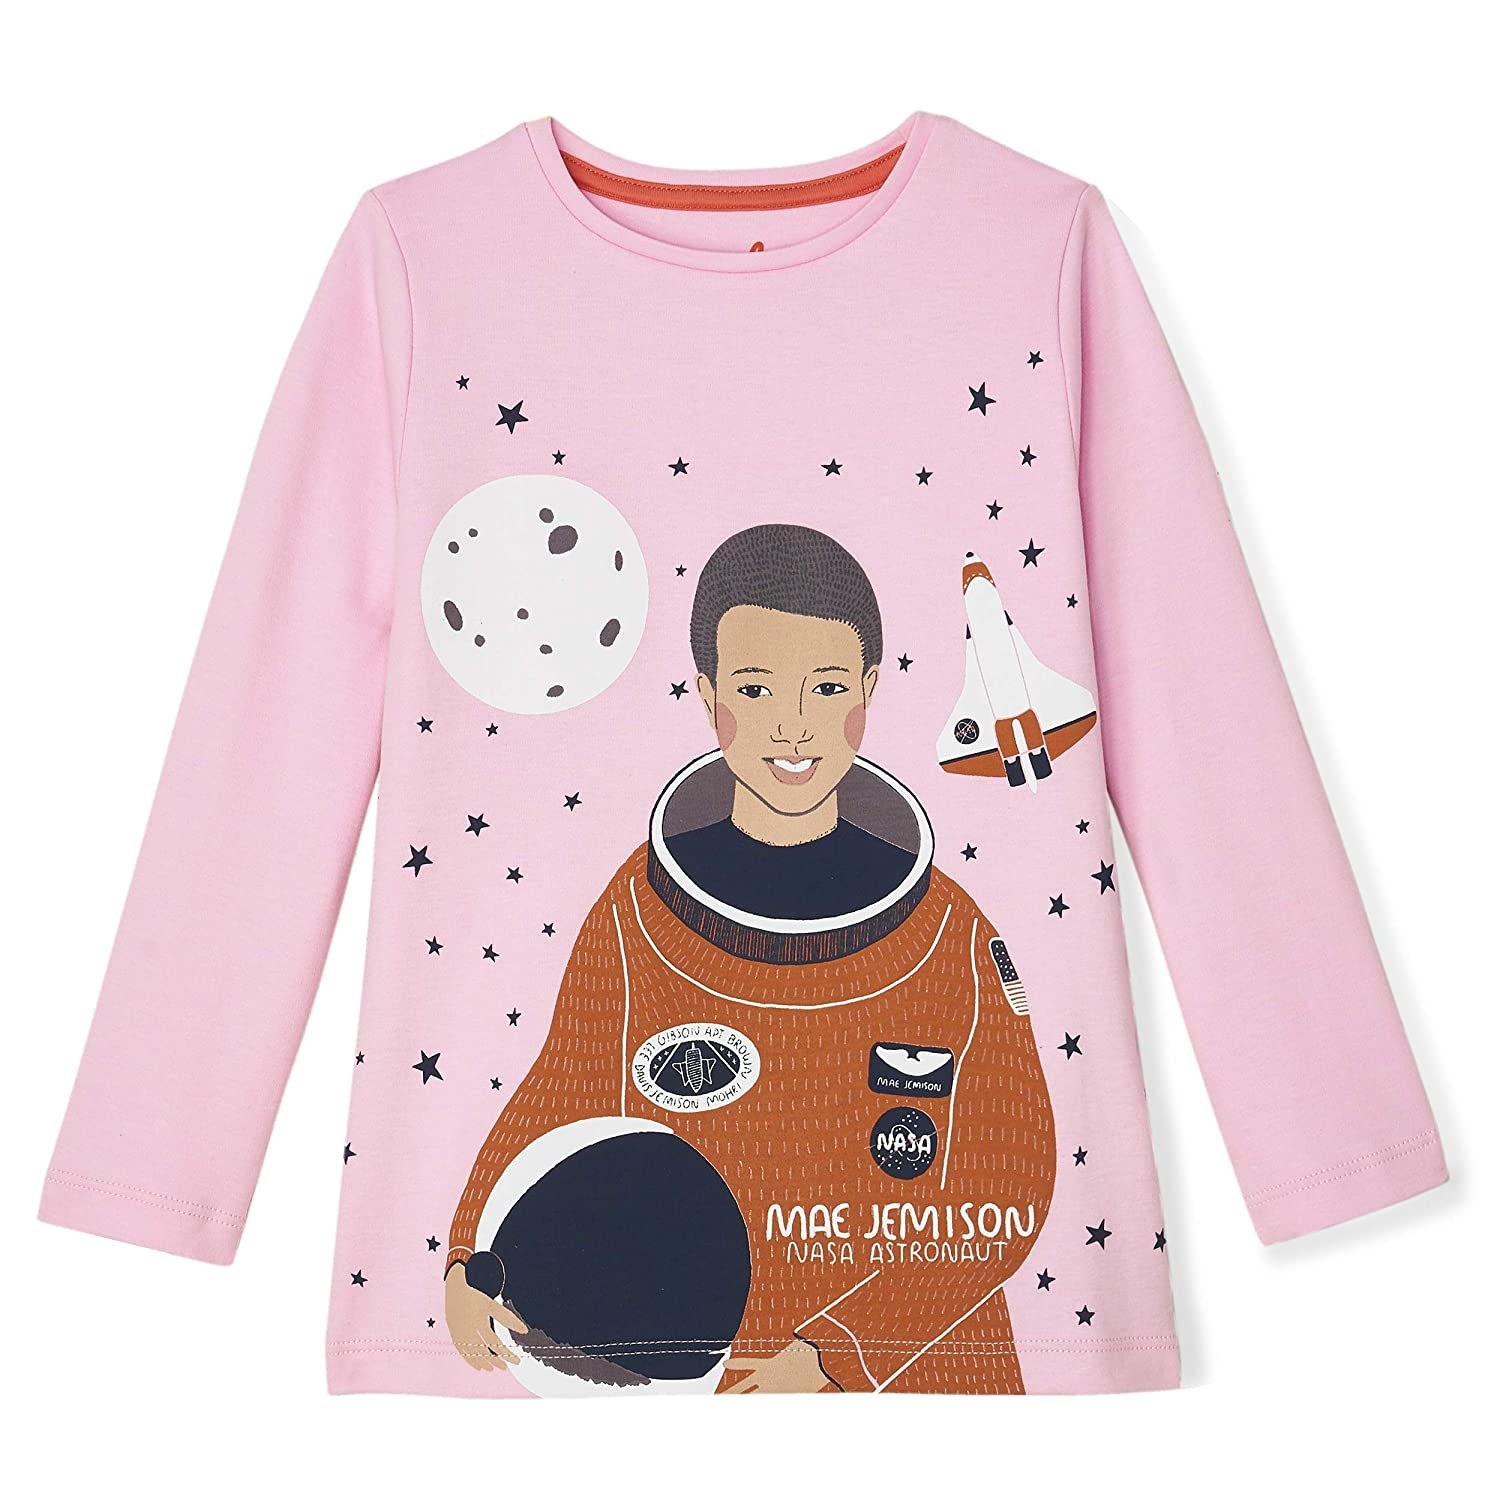 Female Trailblazer Tee-Mae Jemison